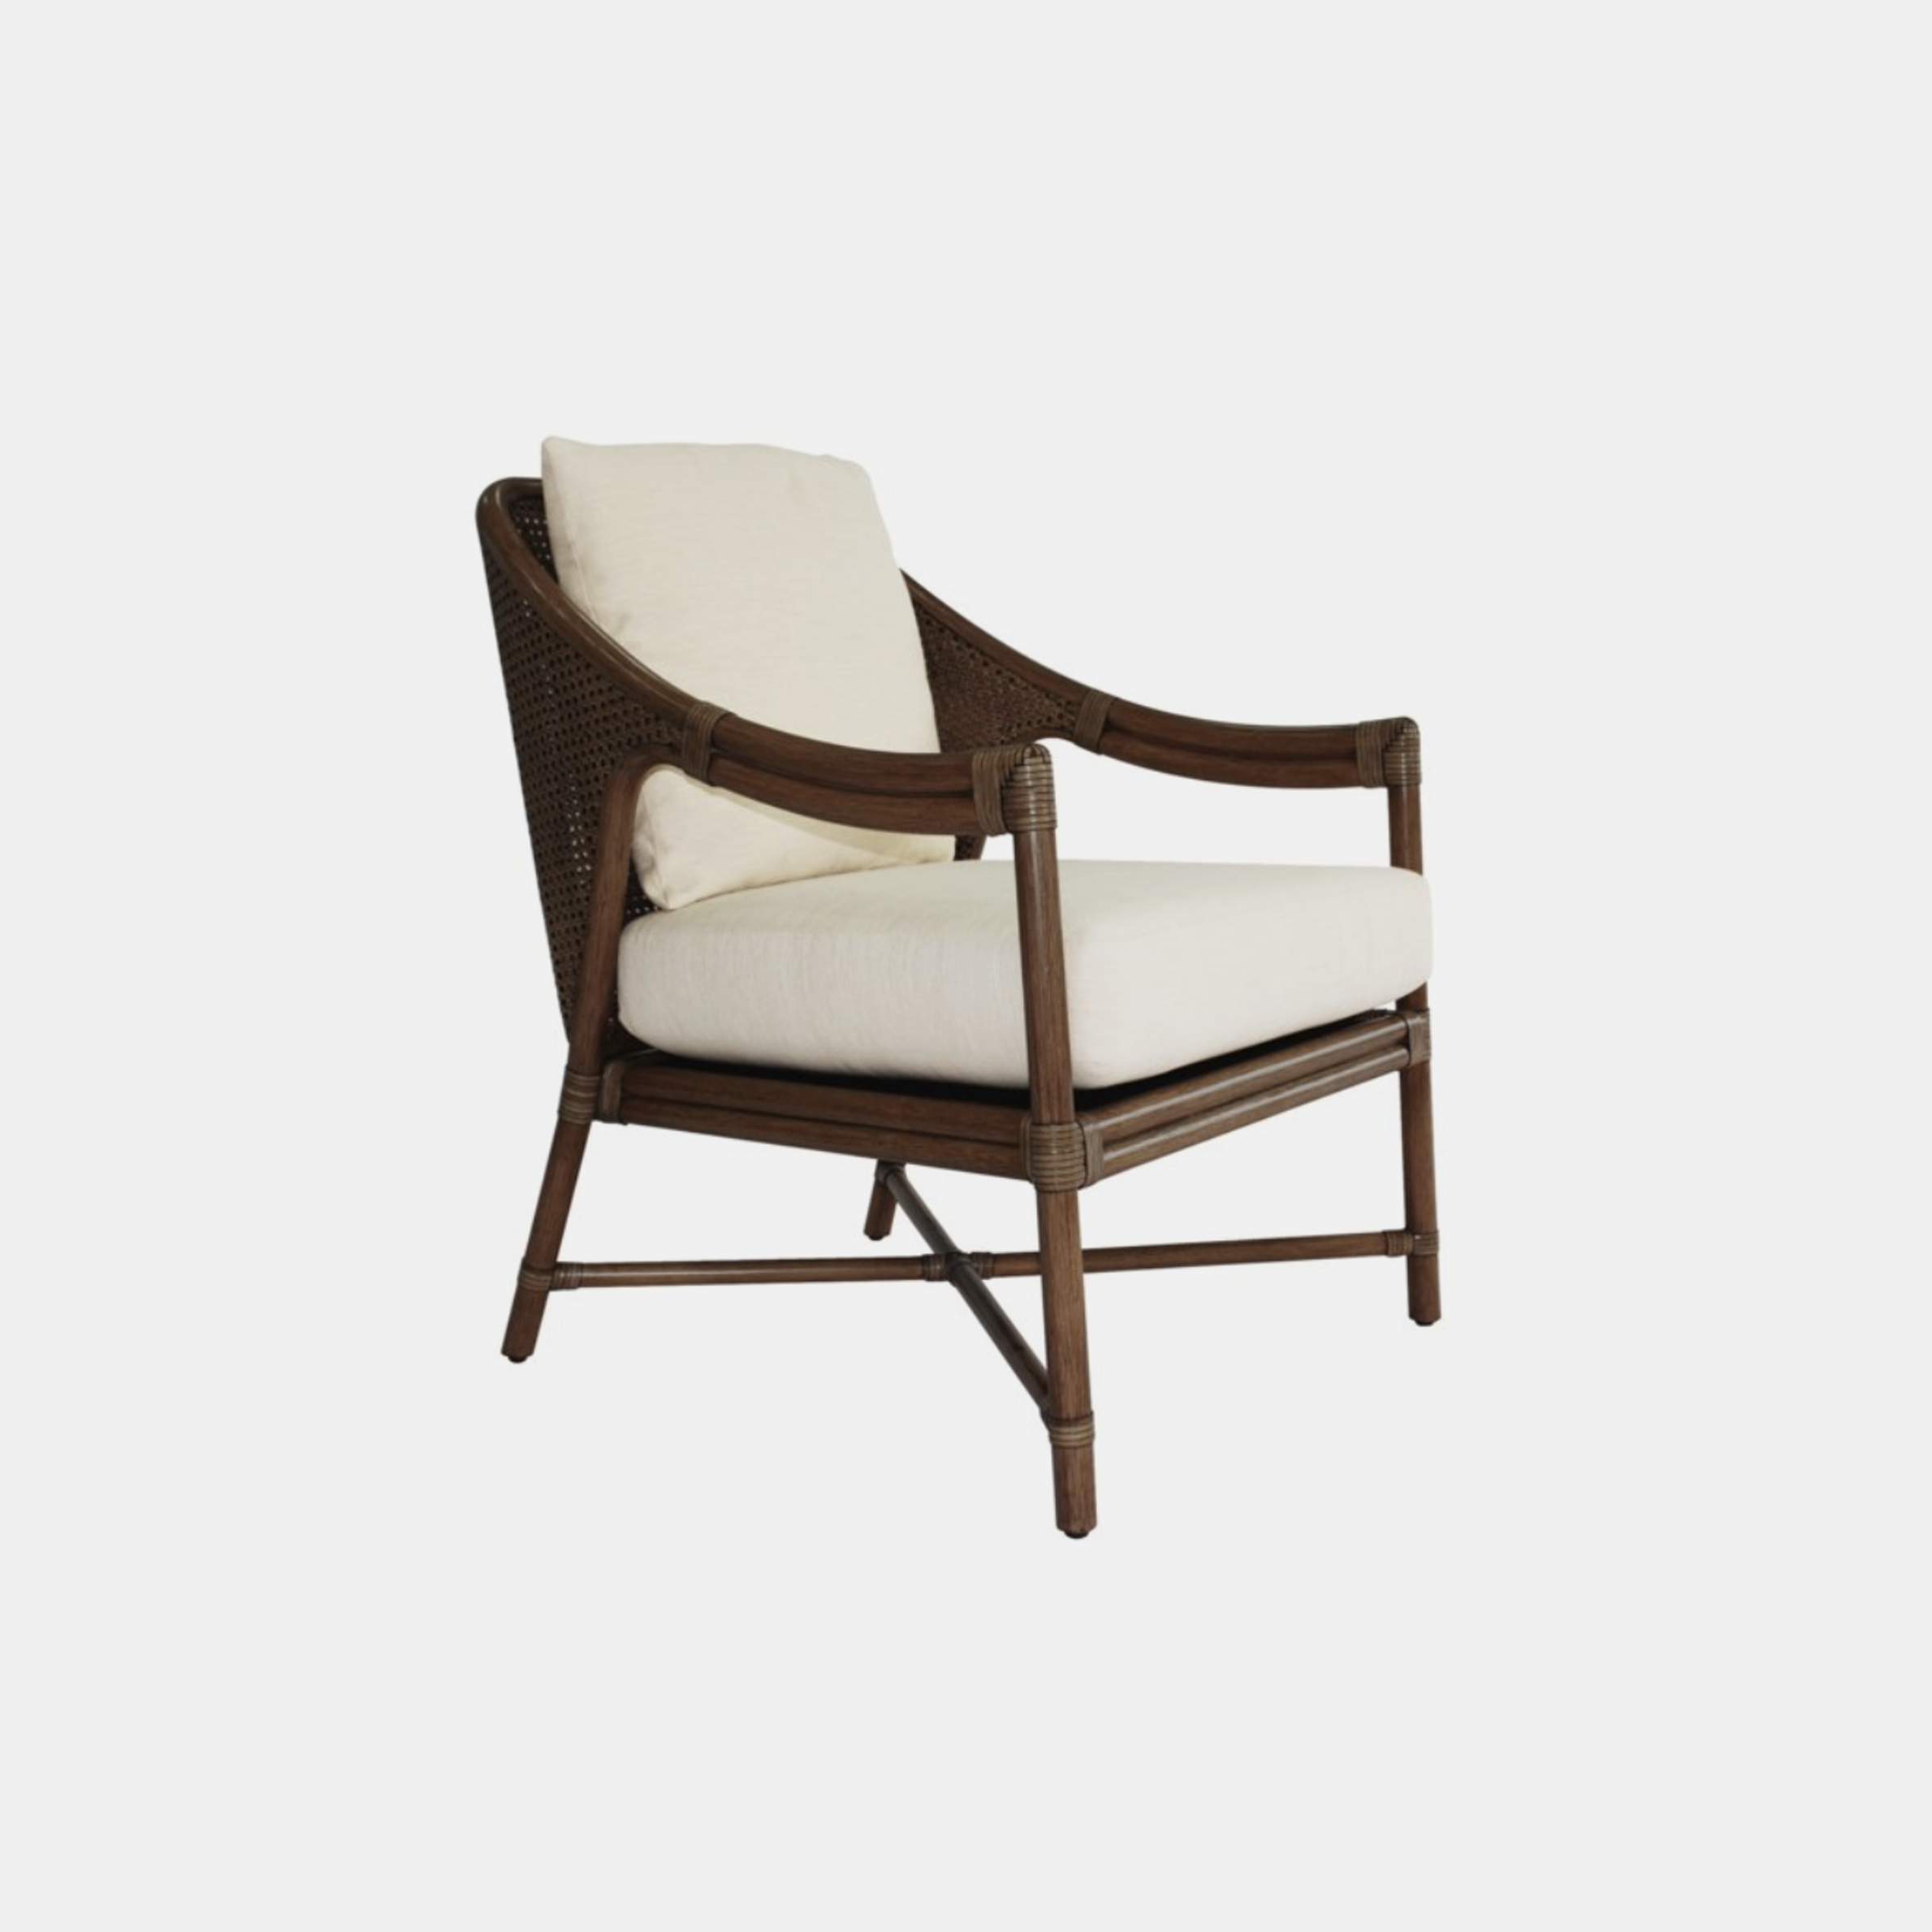 Linwood Chair  27.5'' x 28'' x 34'' Available in cinnamon (shown) and nutmeg. SKU4473SLM